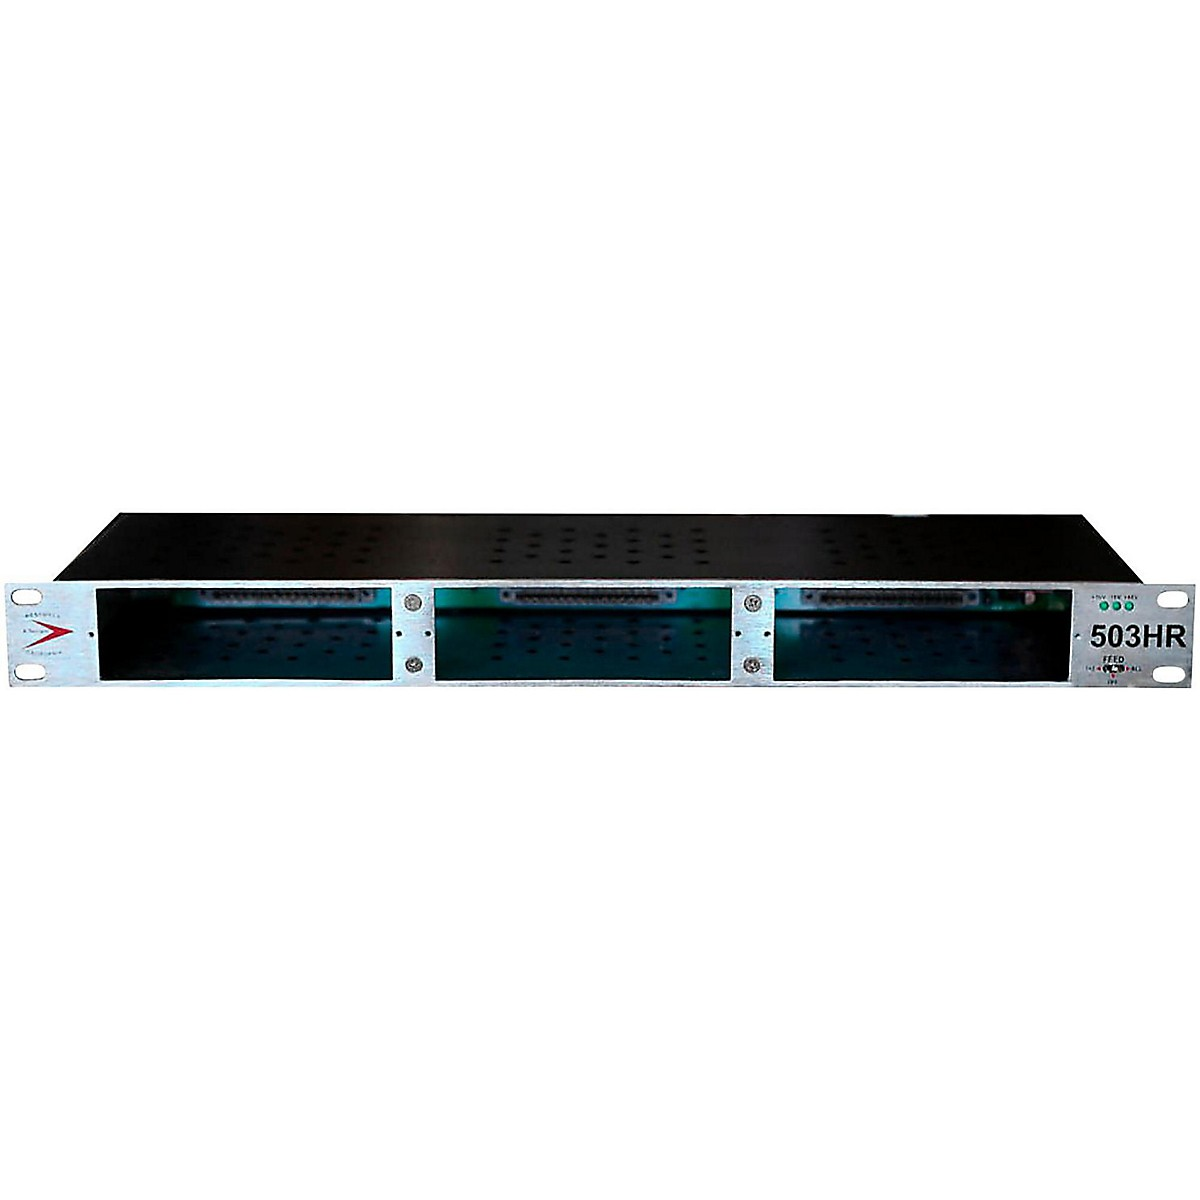 A Designs 503HR 500-Series 3-Slot Rack